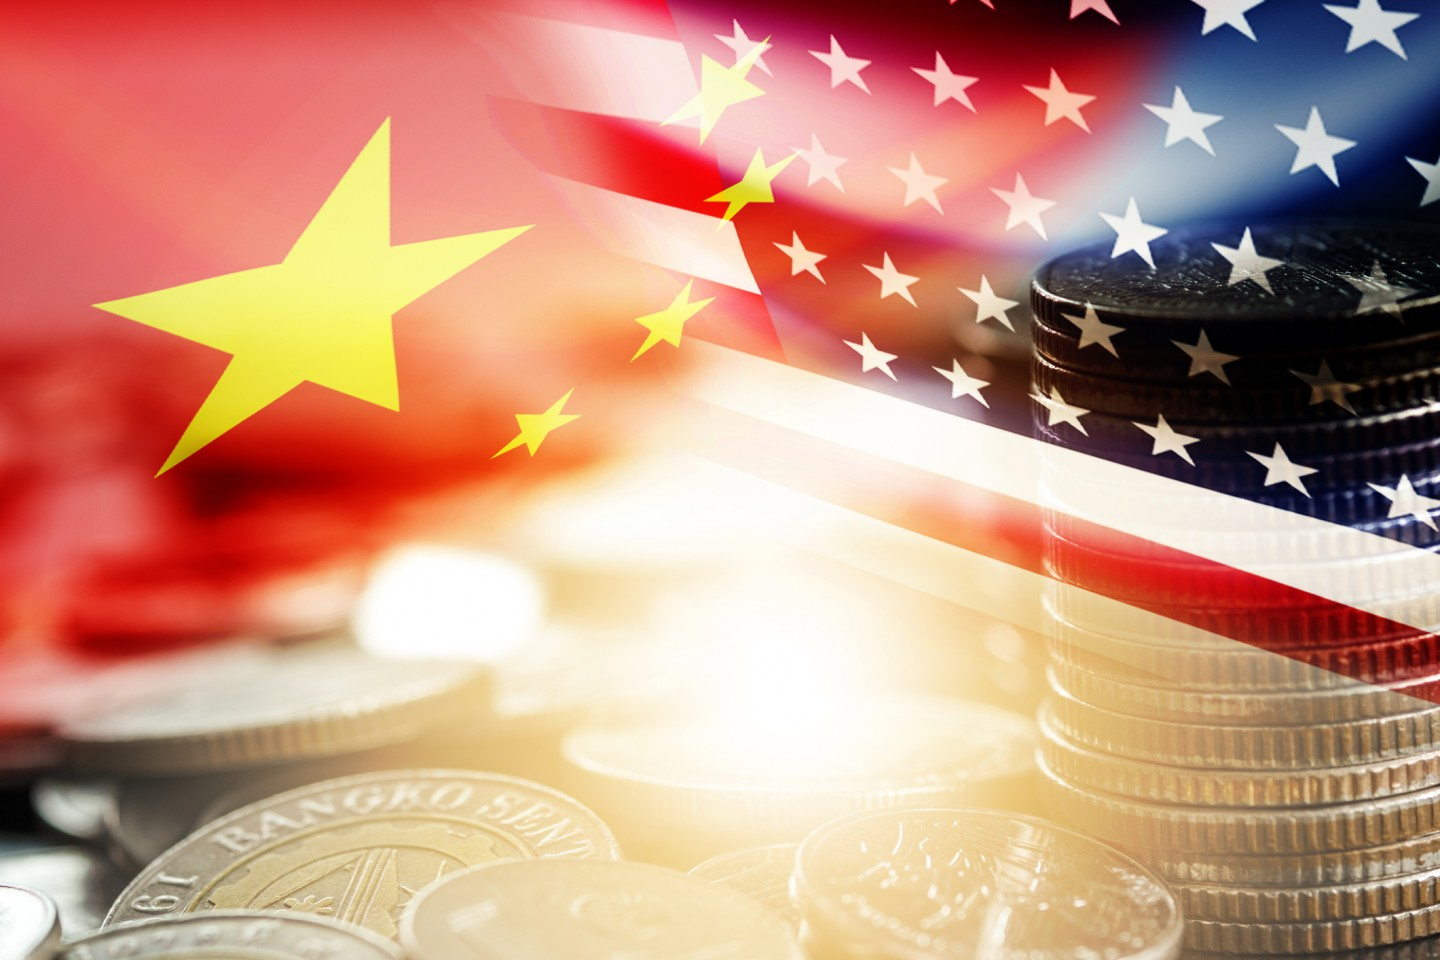 China-US rivalry is on an increasingly hostile trajectory. (iStock)